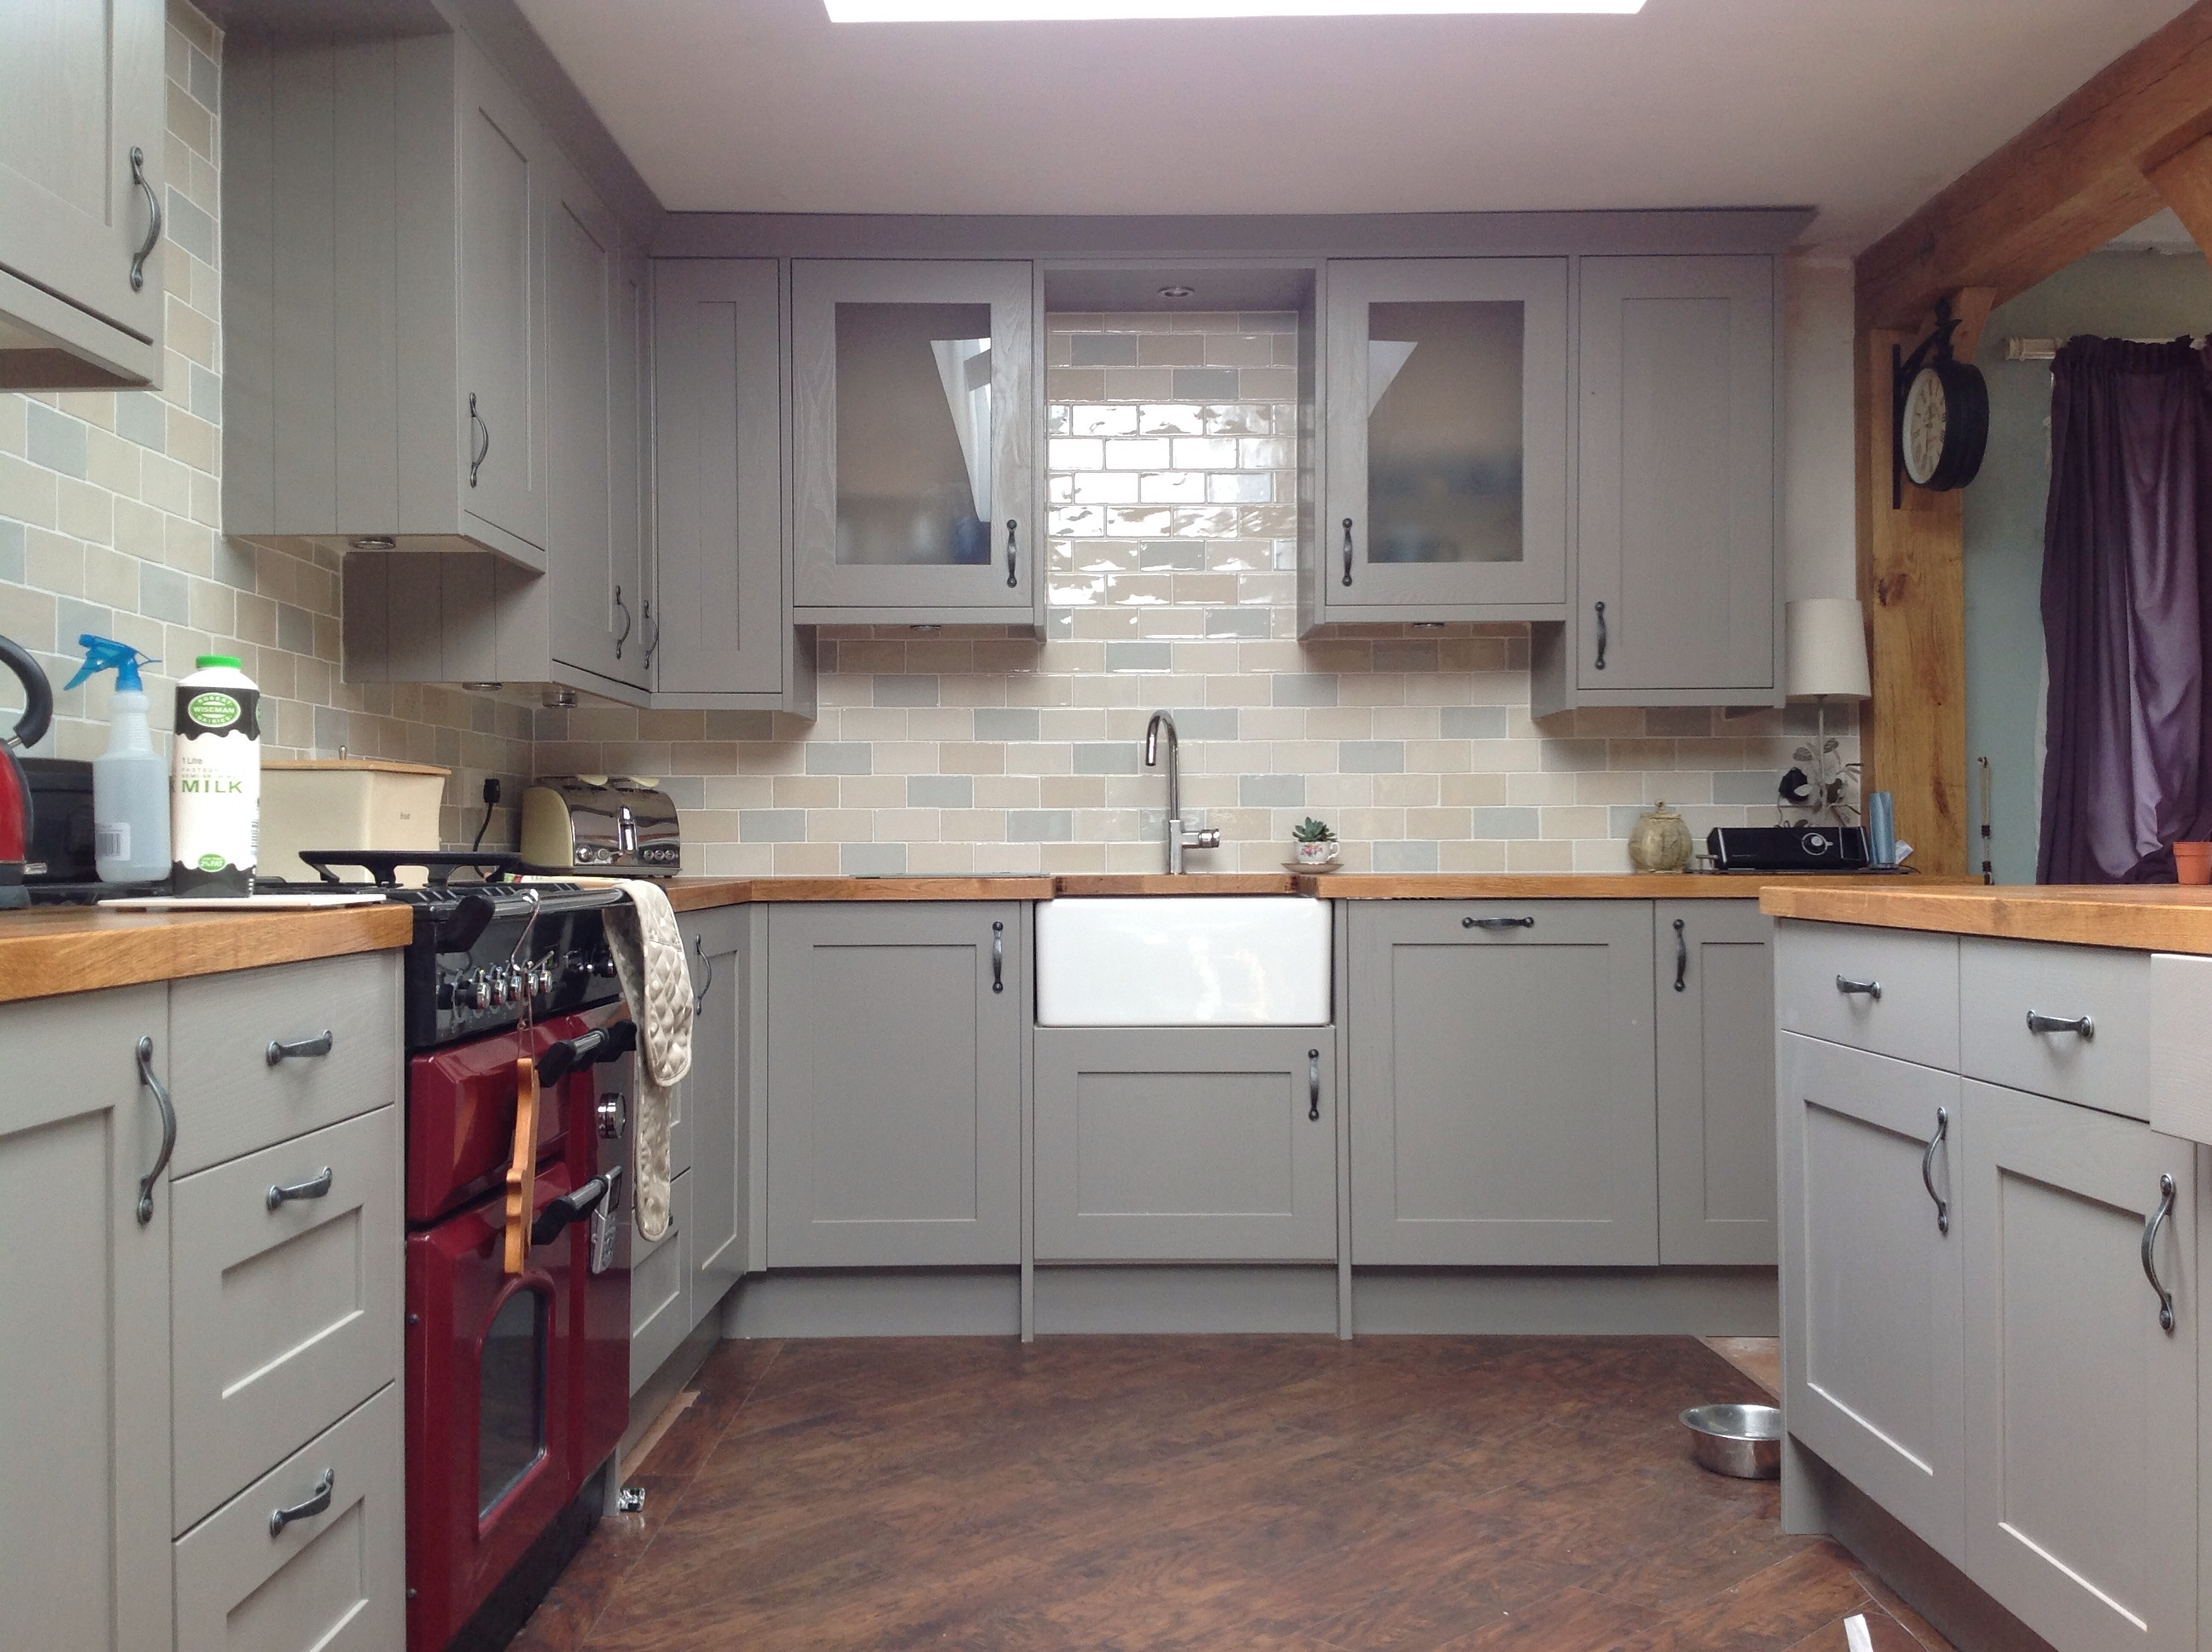 Kitchen Cabinet Hanging Rail B & Q